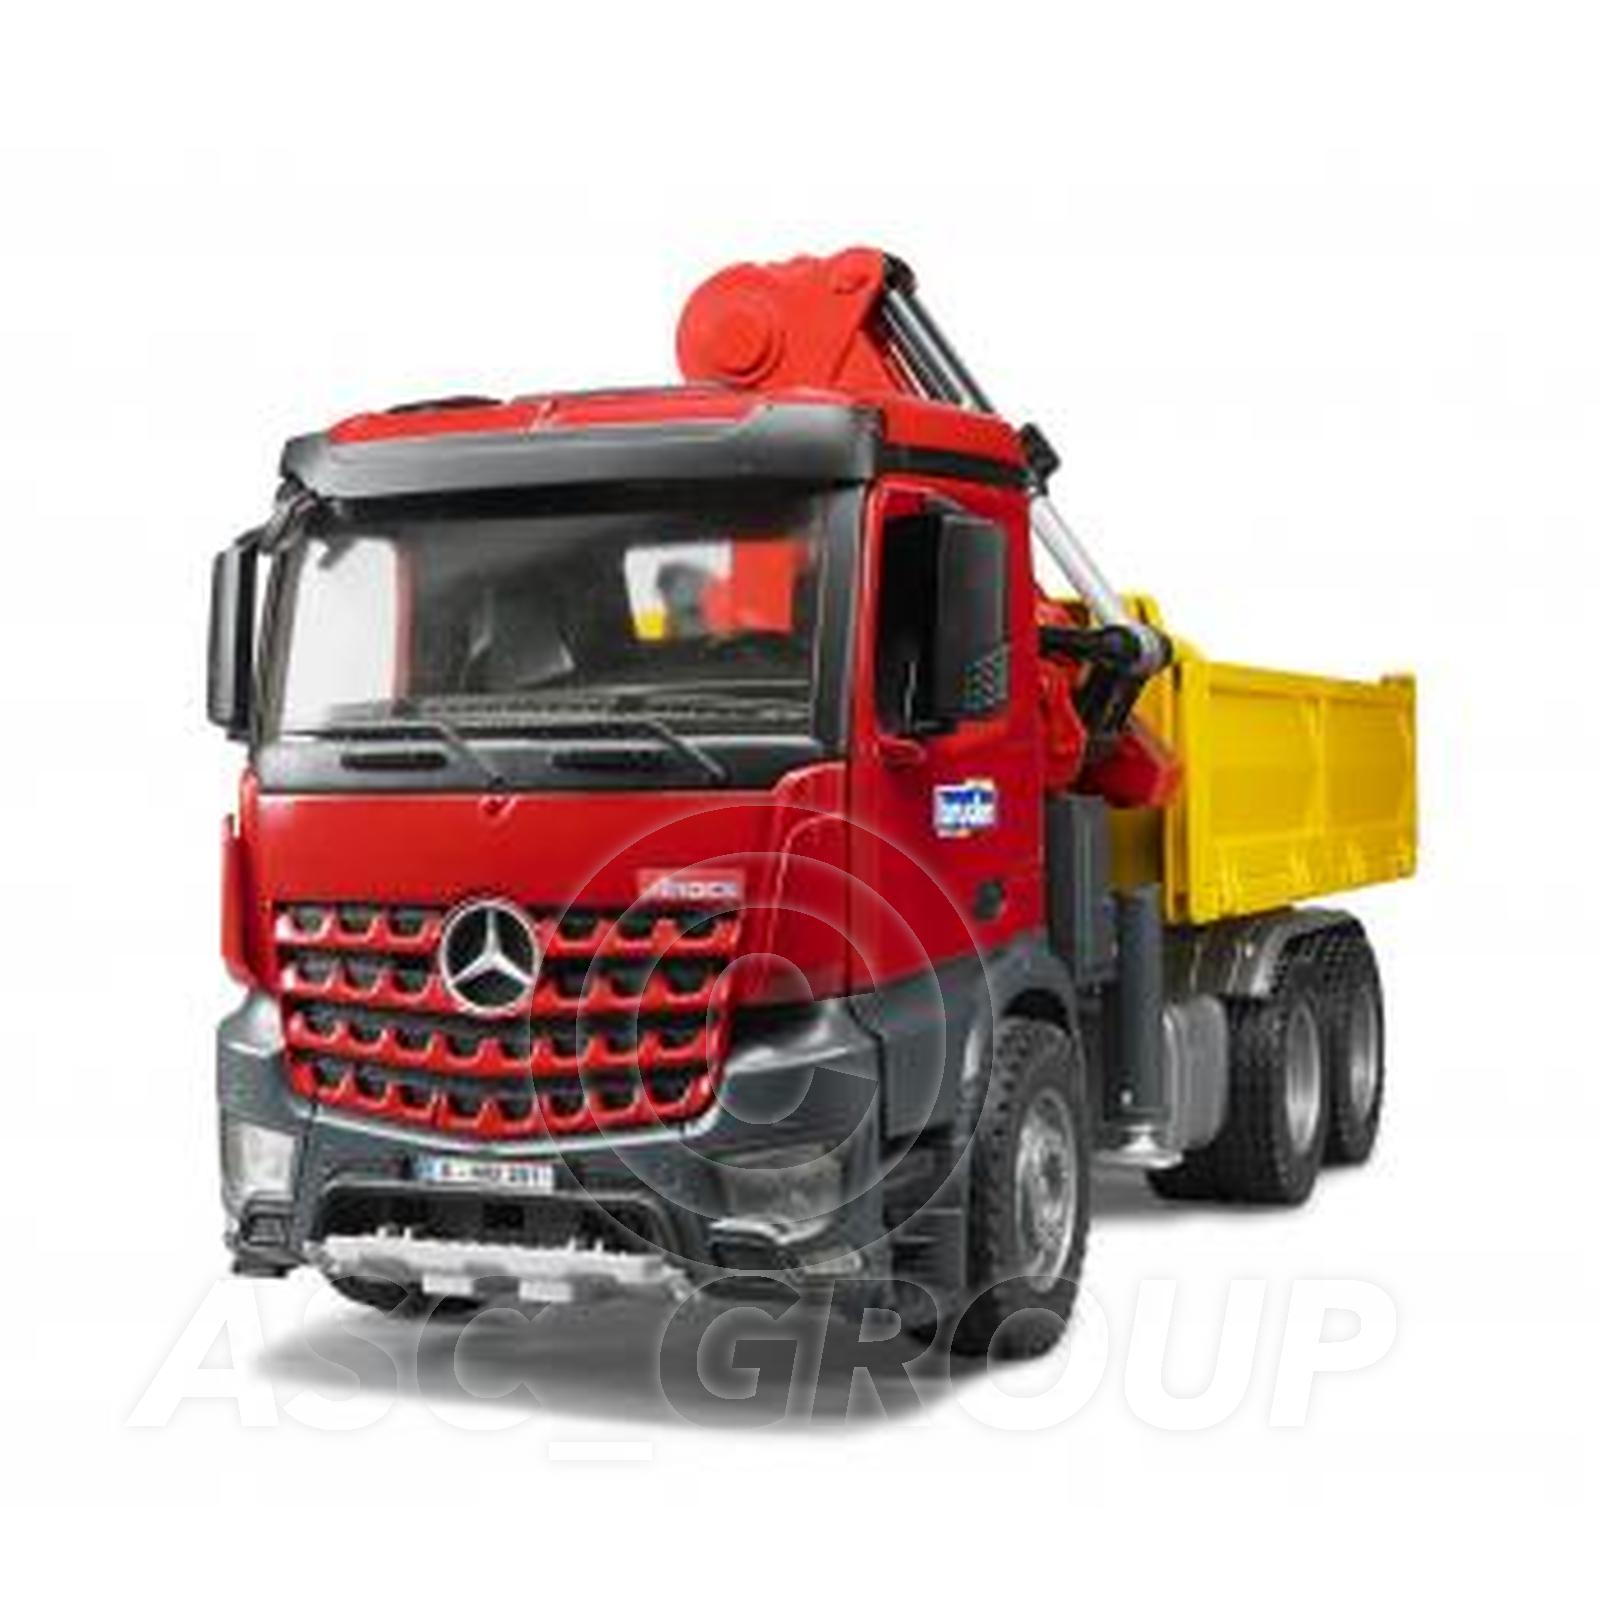 Bruder toys 03651 pro series mercedes benz mb arocs truck for Mercedes benz truck toys